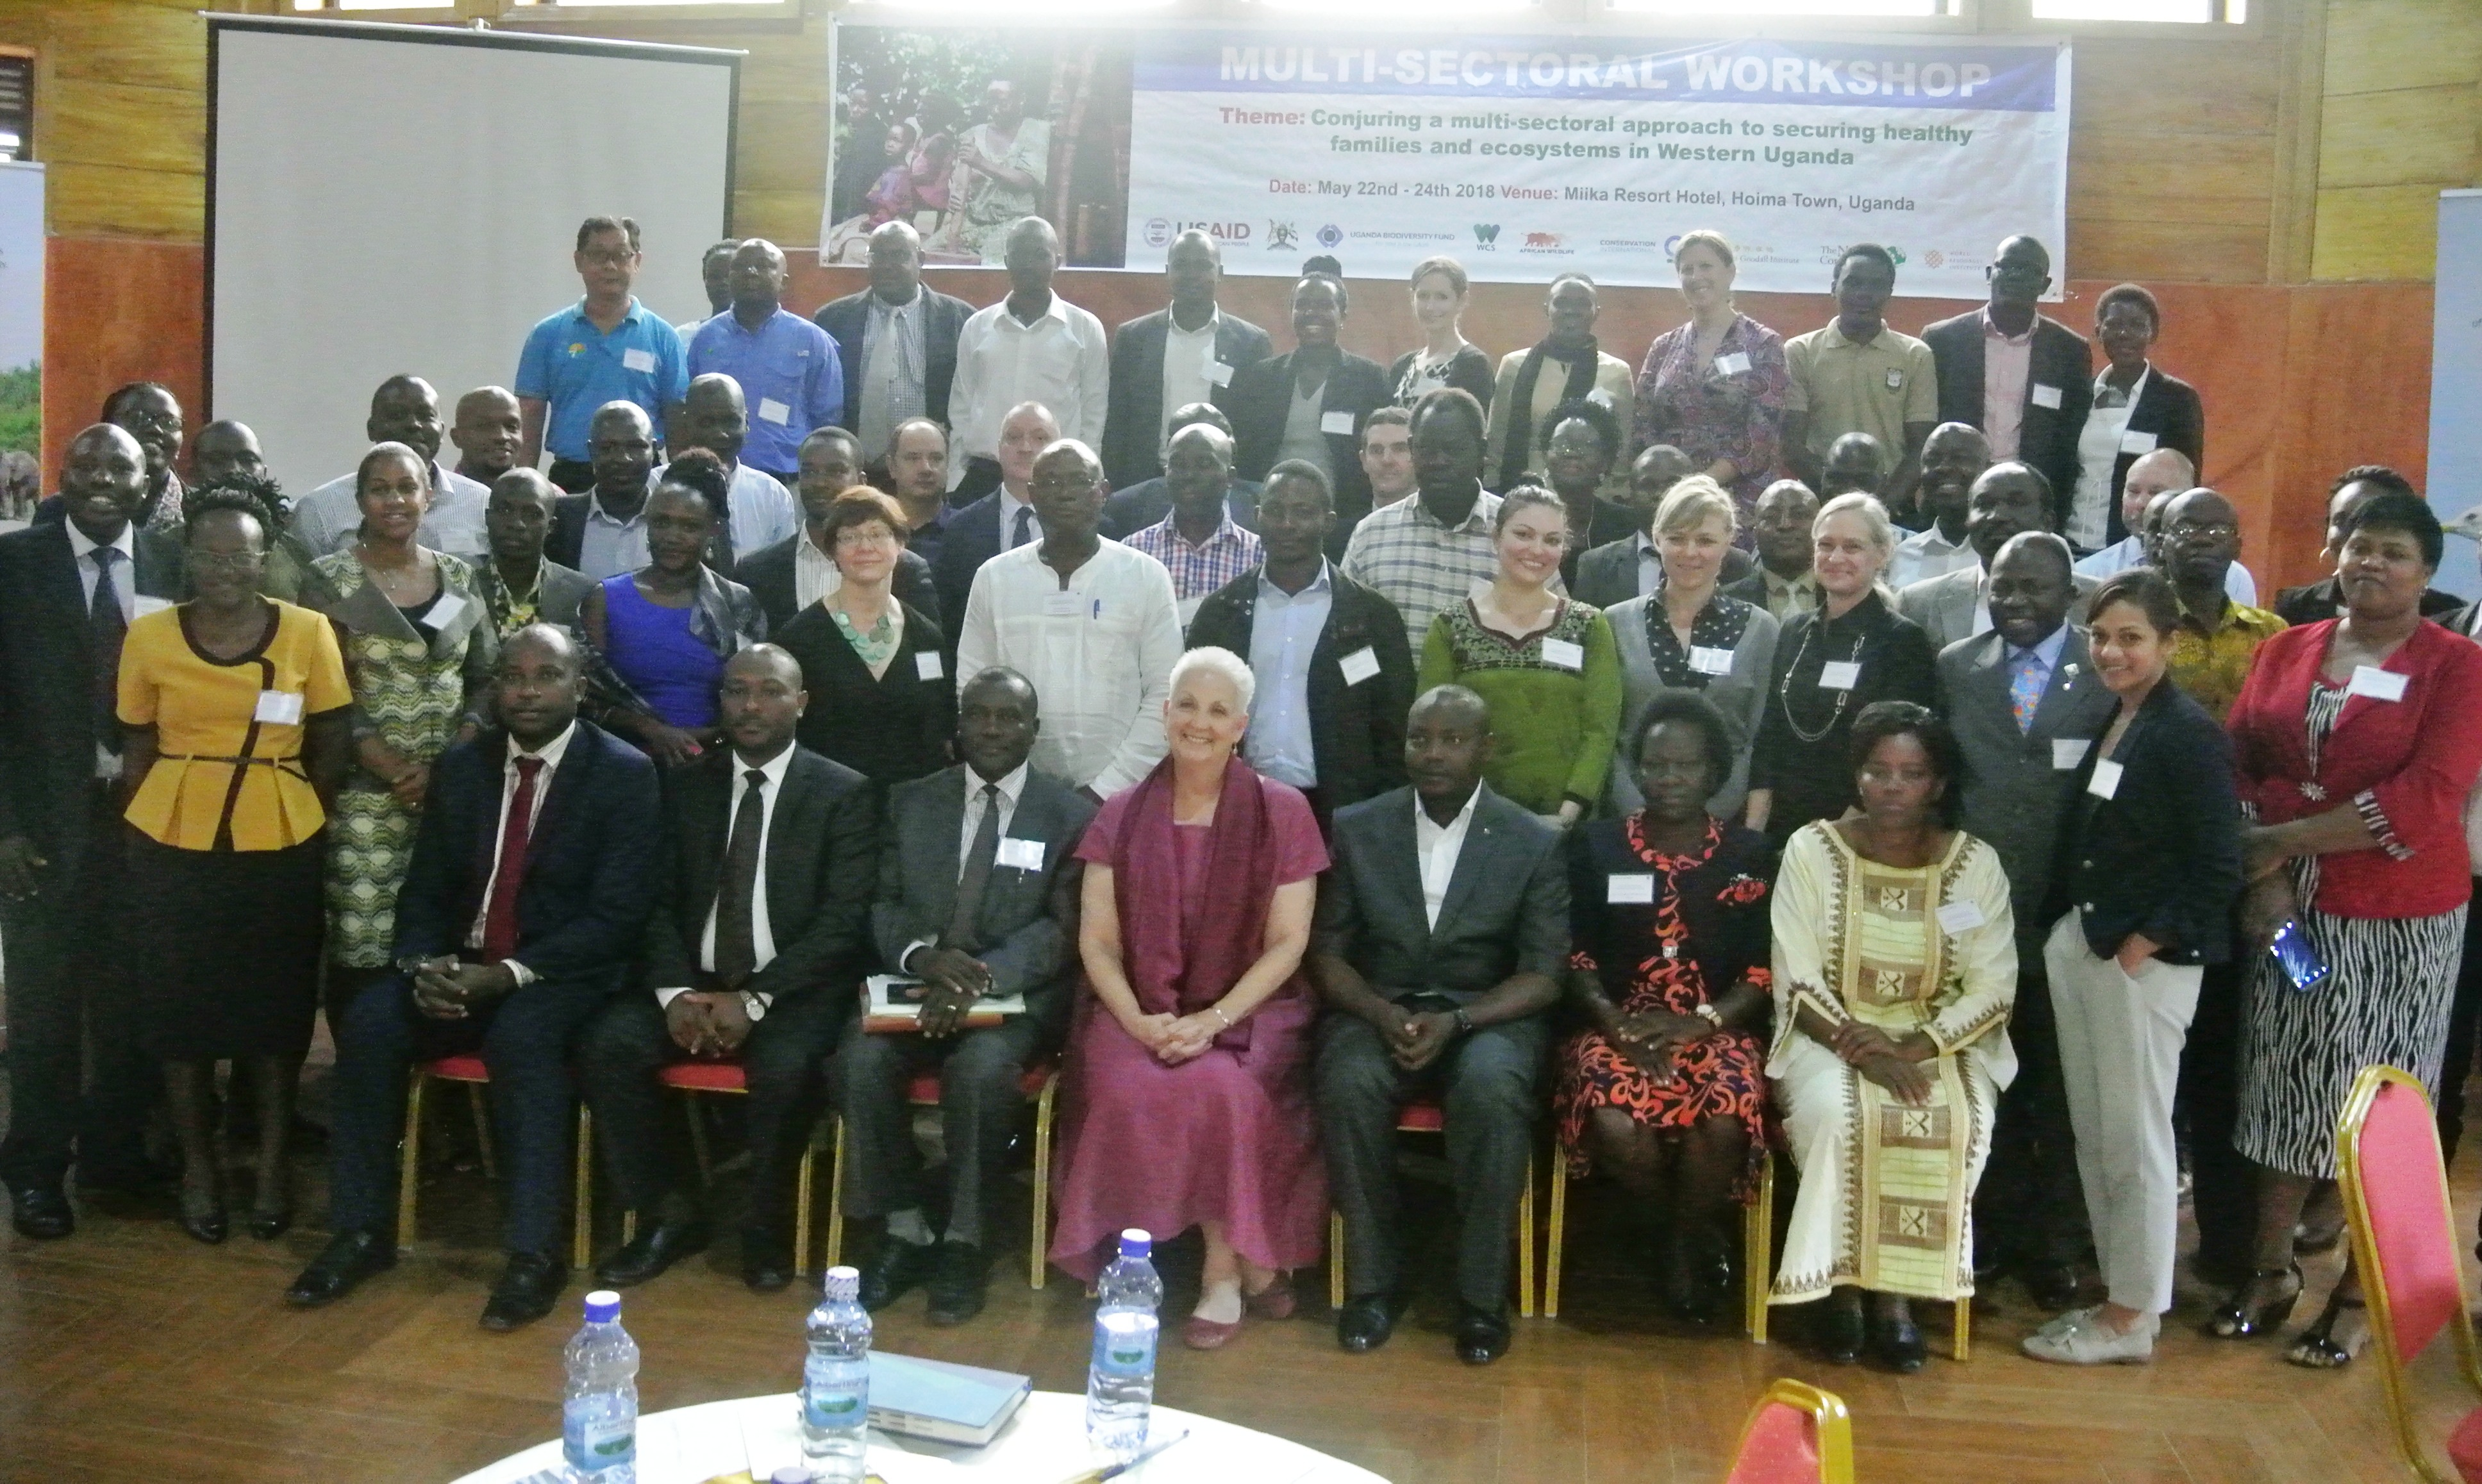 20180522 Multi-sectoral Workshop in Western Uganda